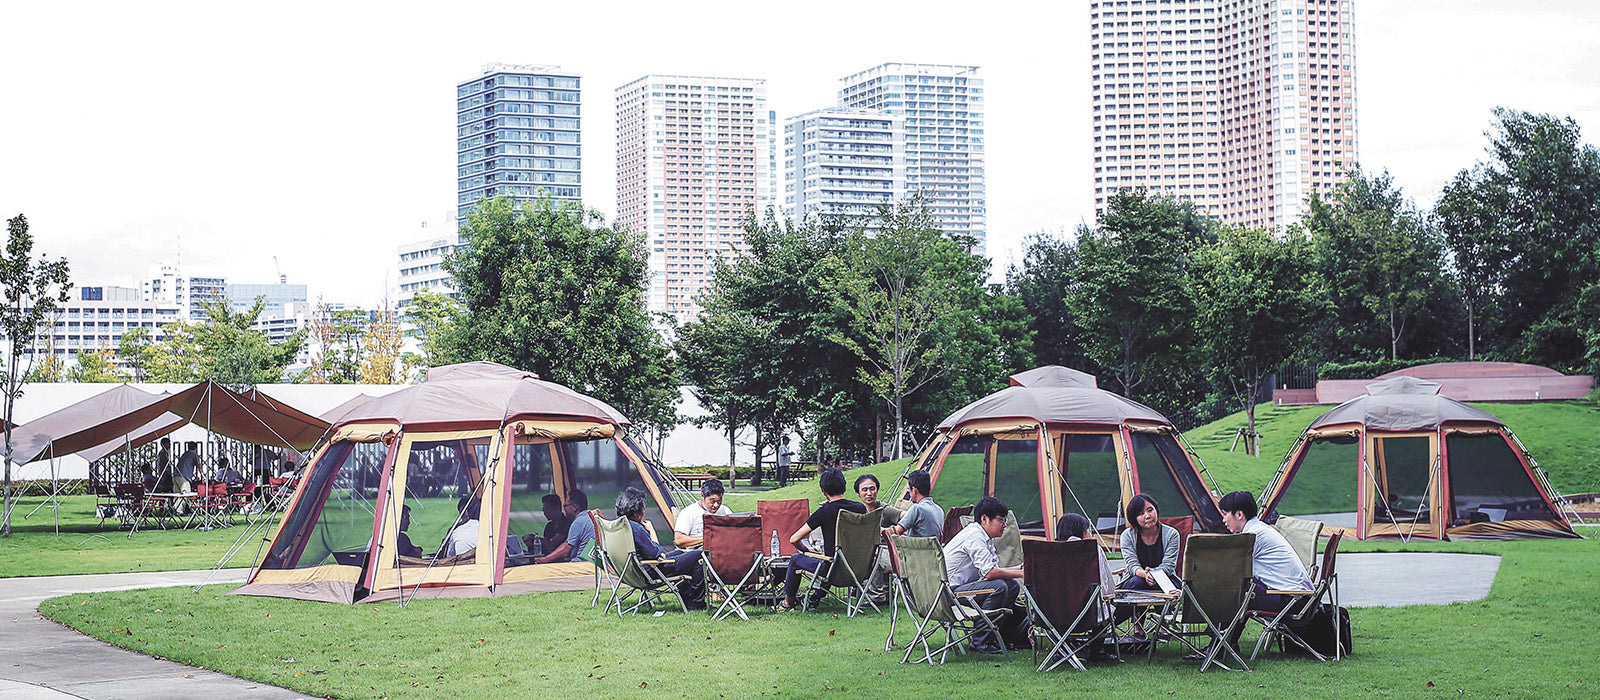 Image of campers on a campfield in front of urban setting